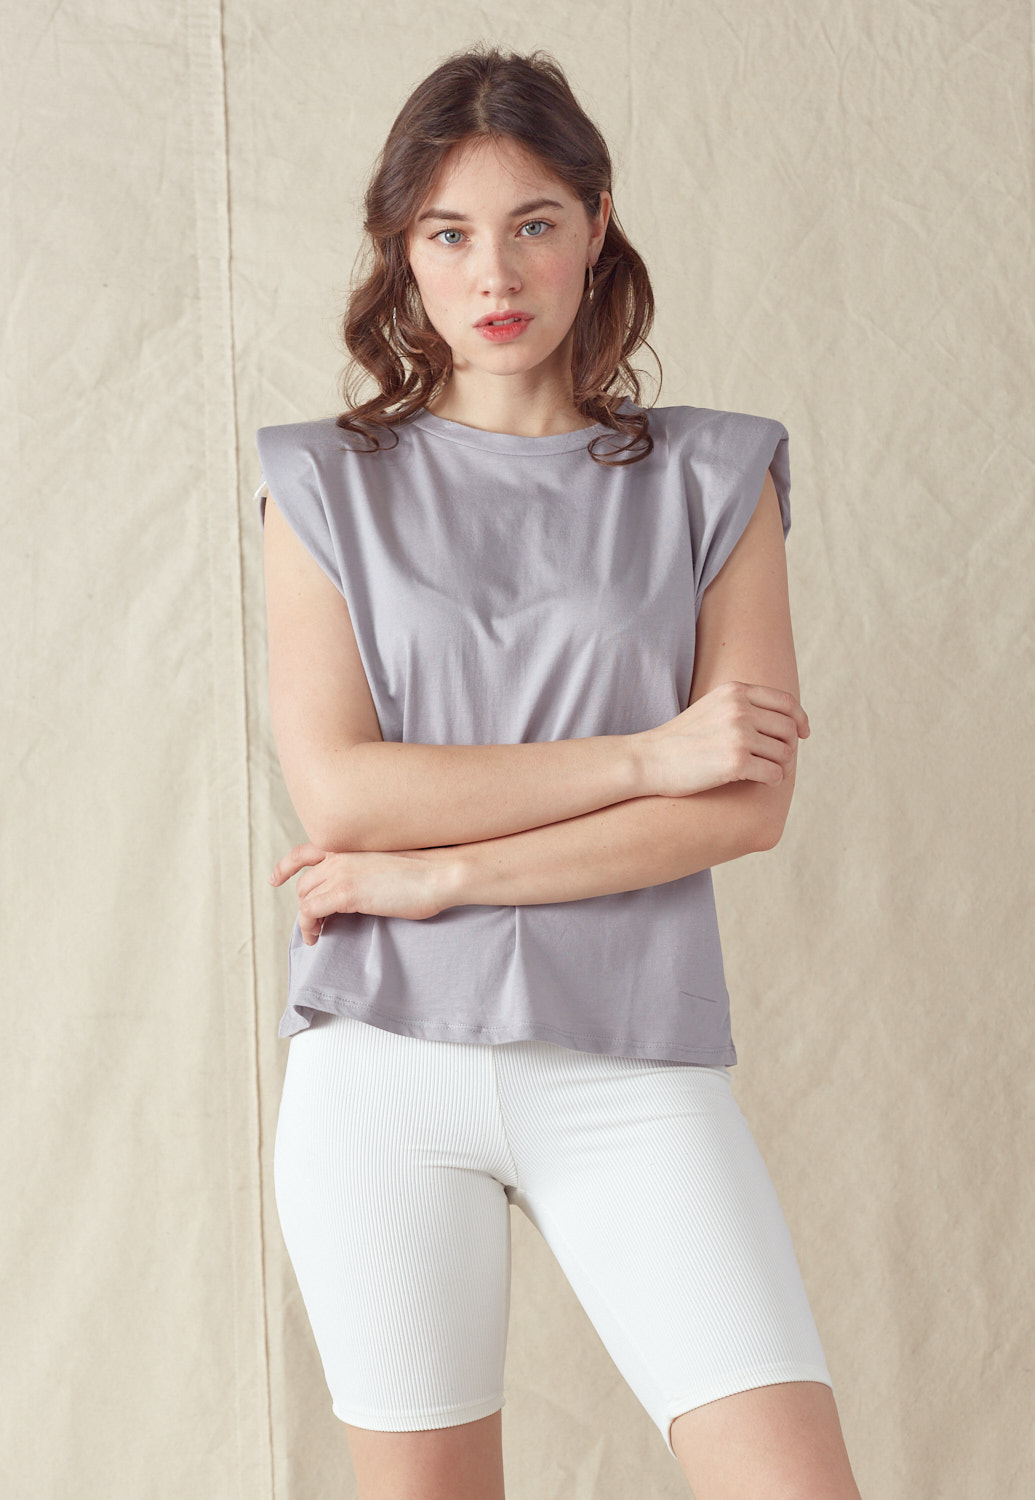 Shoulder Pad Tank Top